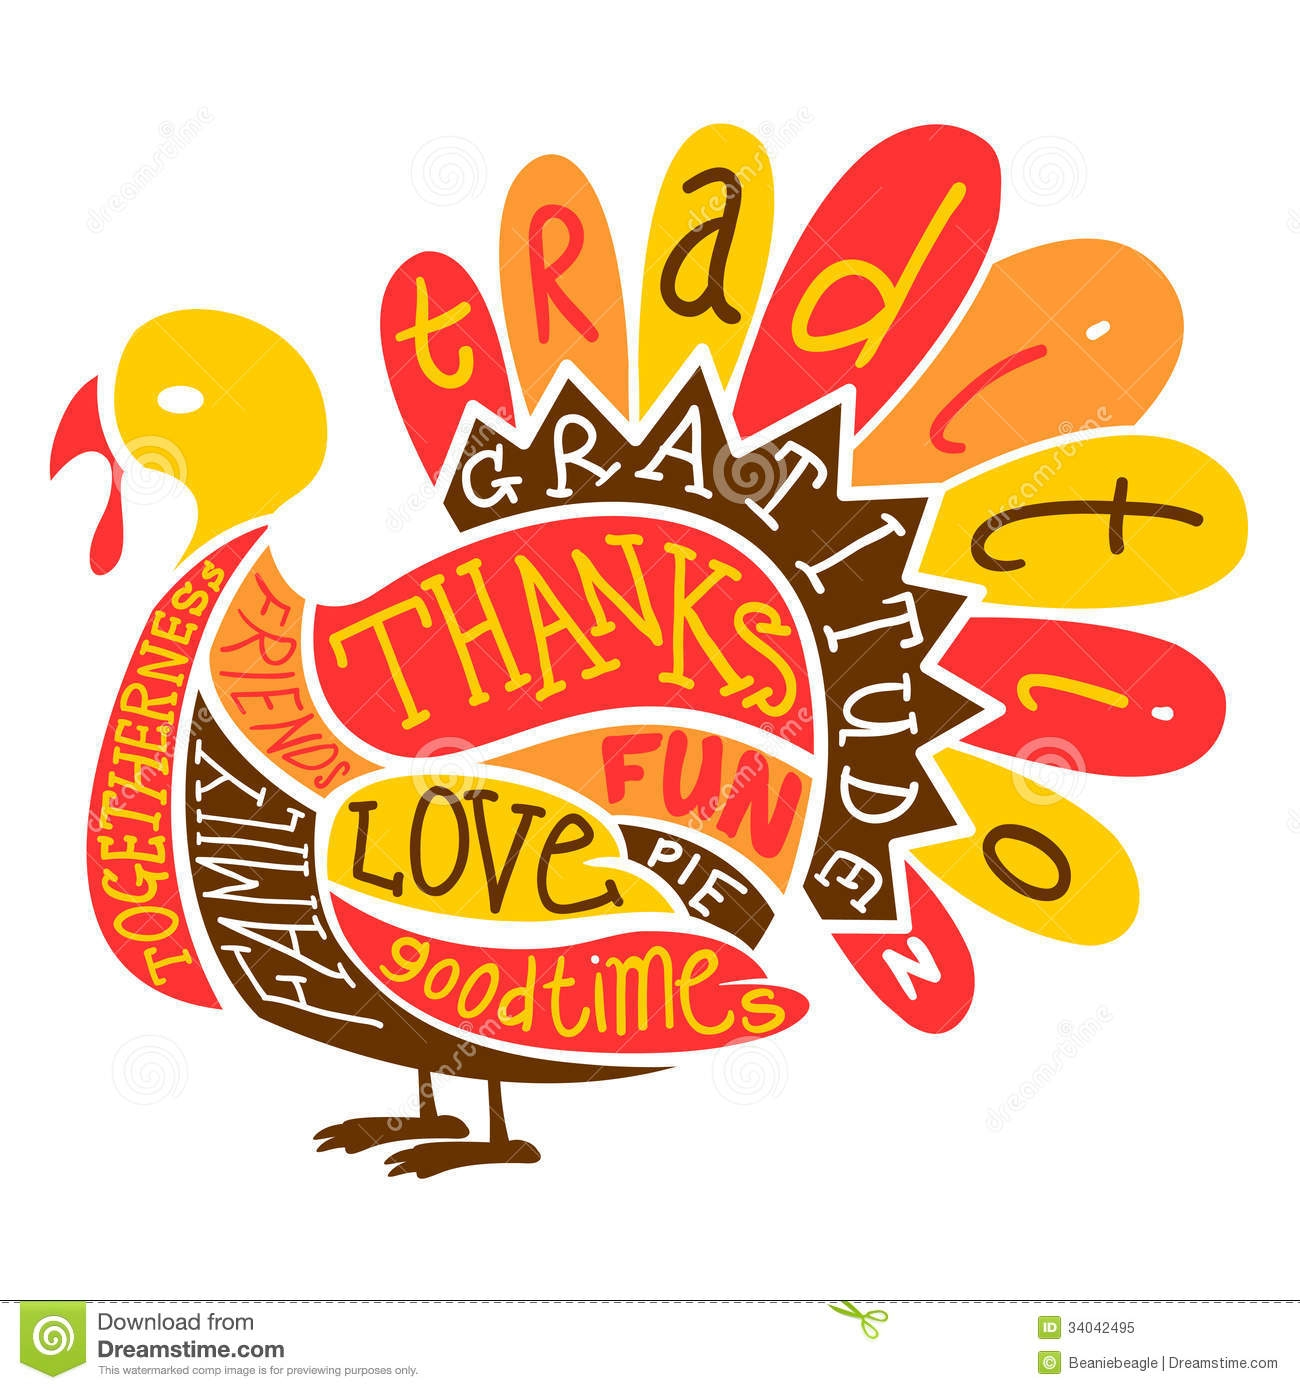 Thanksgiving Turkey Clipart Free-Thanksgiving Turkey Clipart Free-8